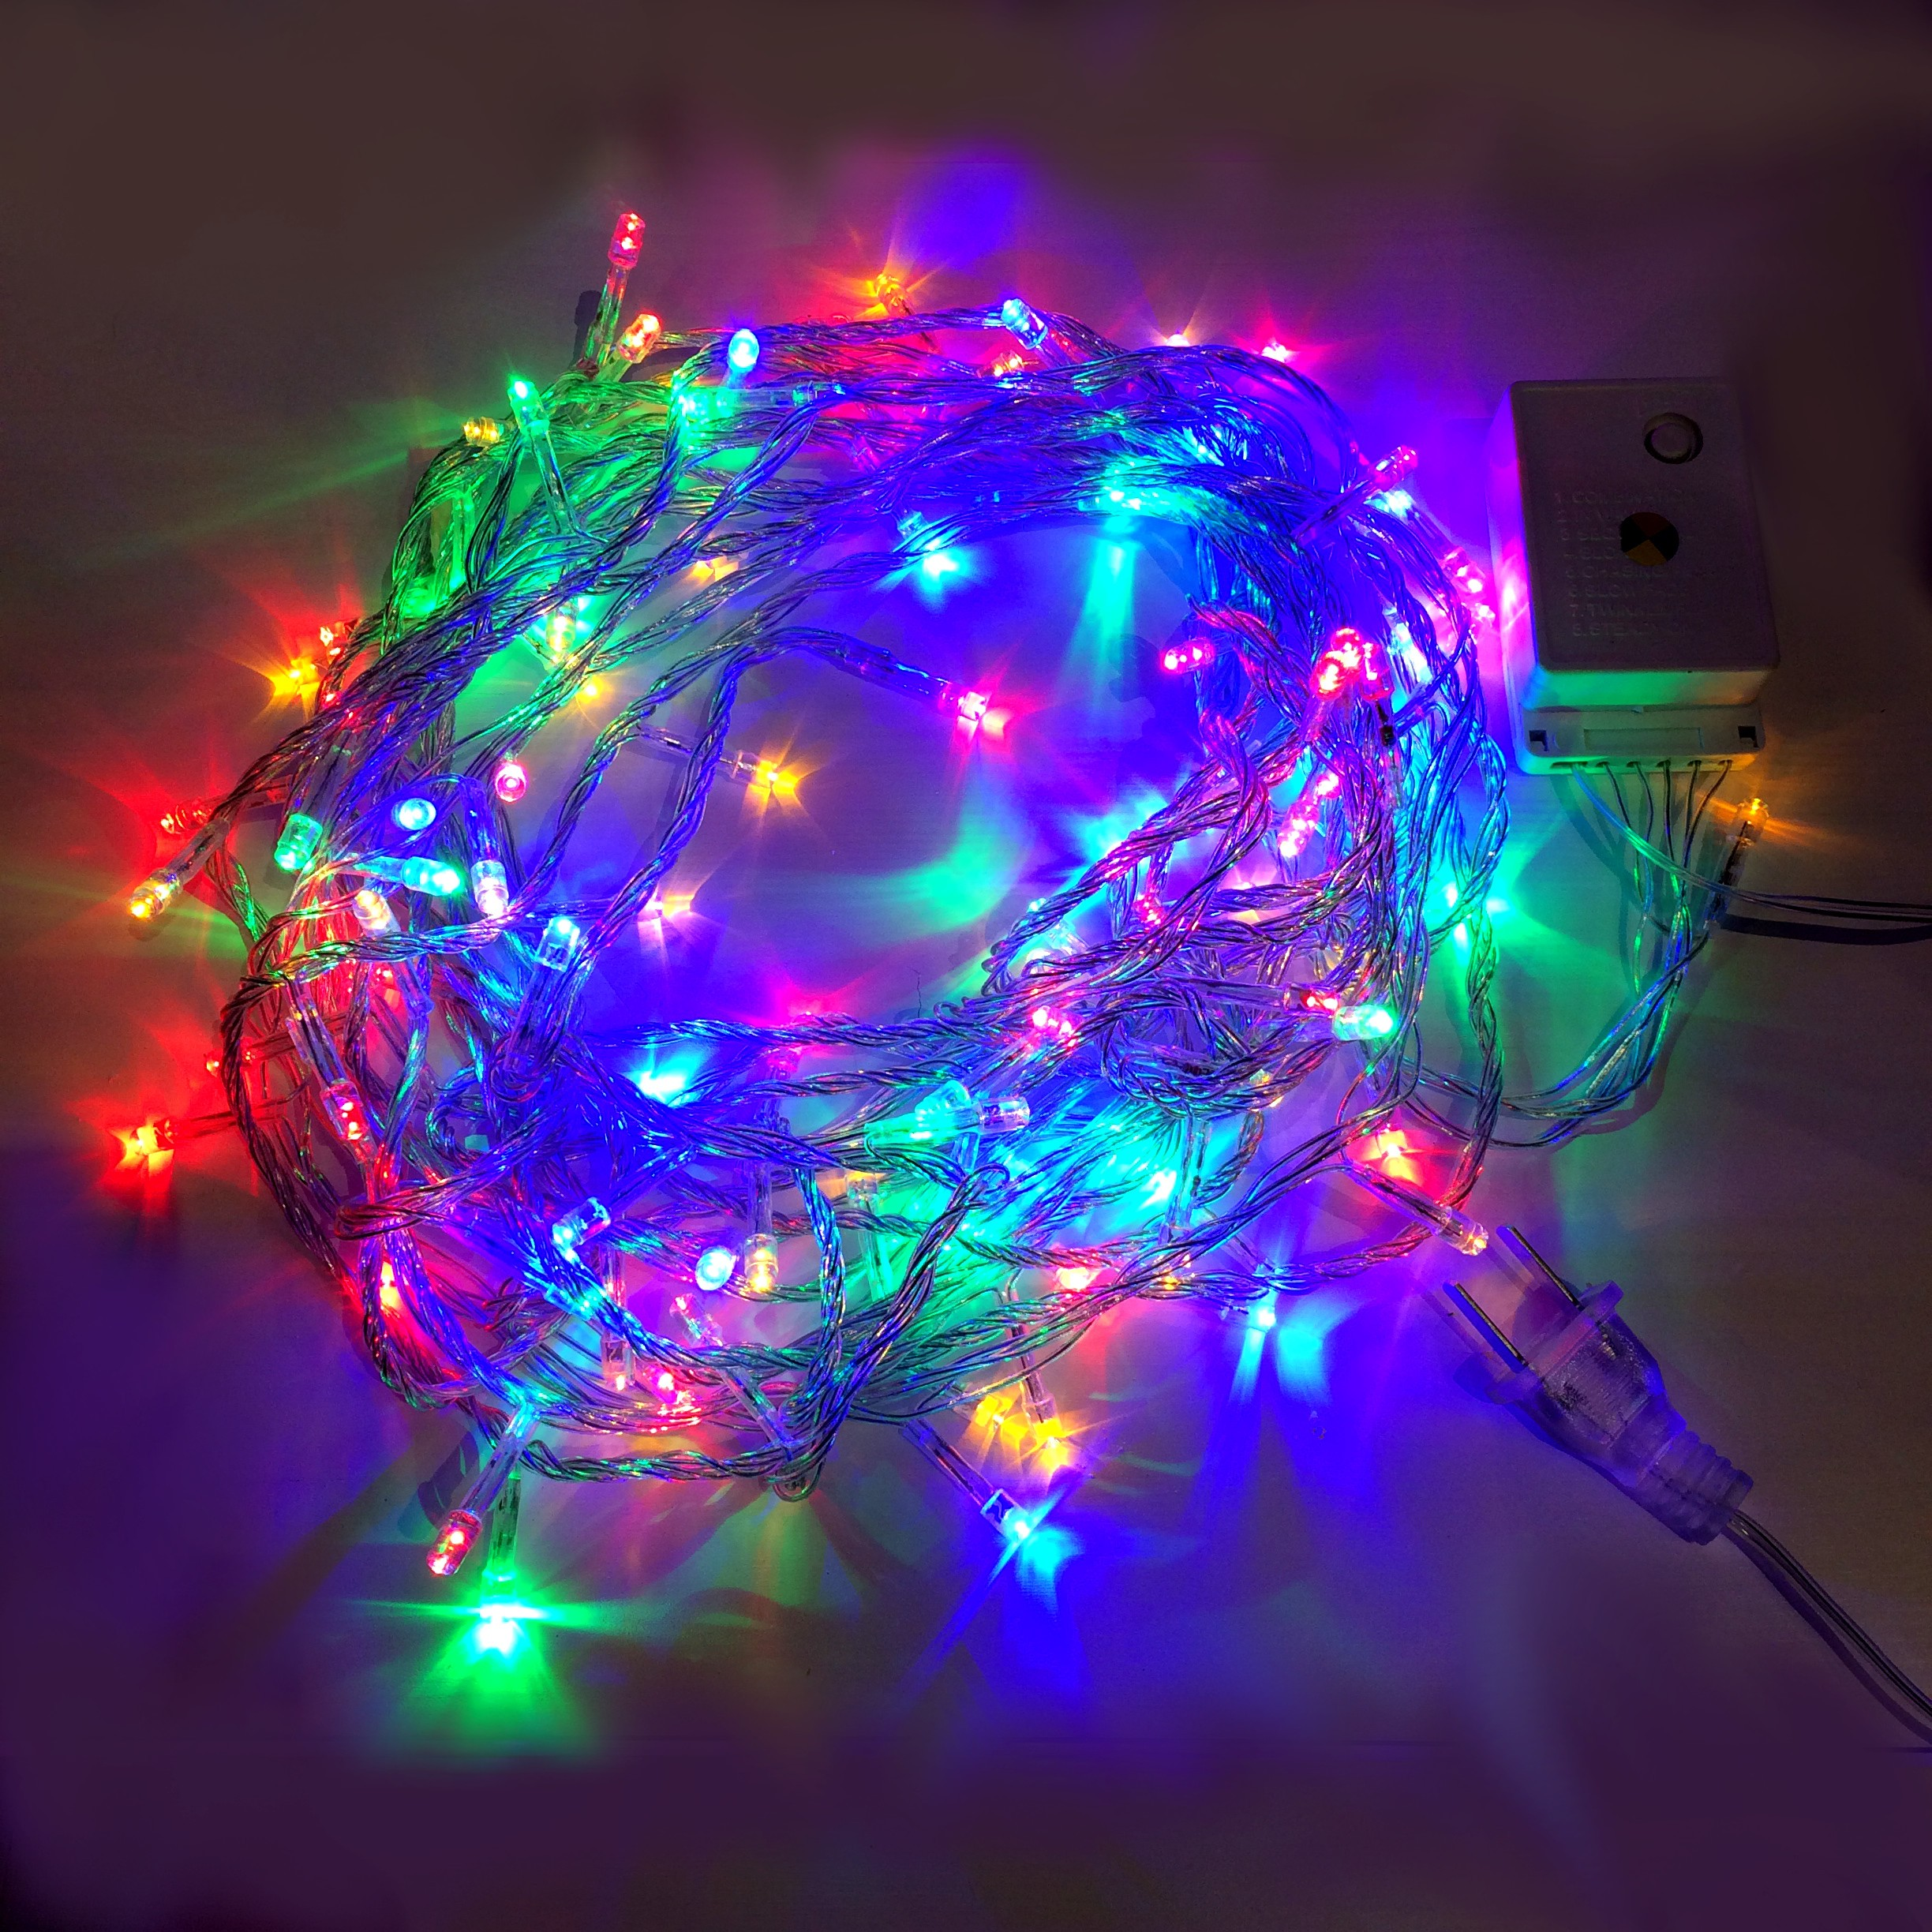 799 rgyb 10m 8 mode led string lights fairy lights christmas lights tinkersphere